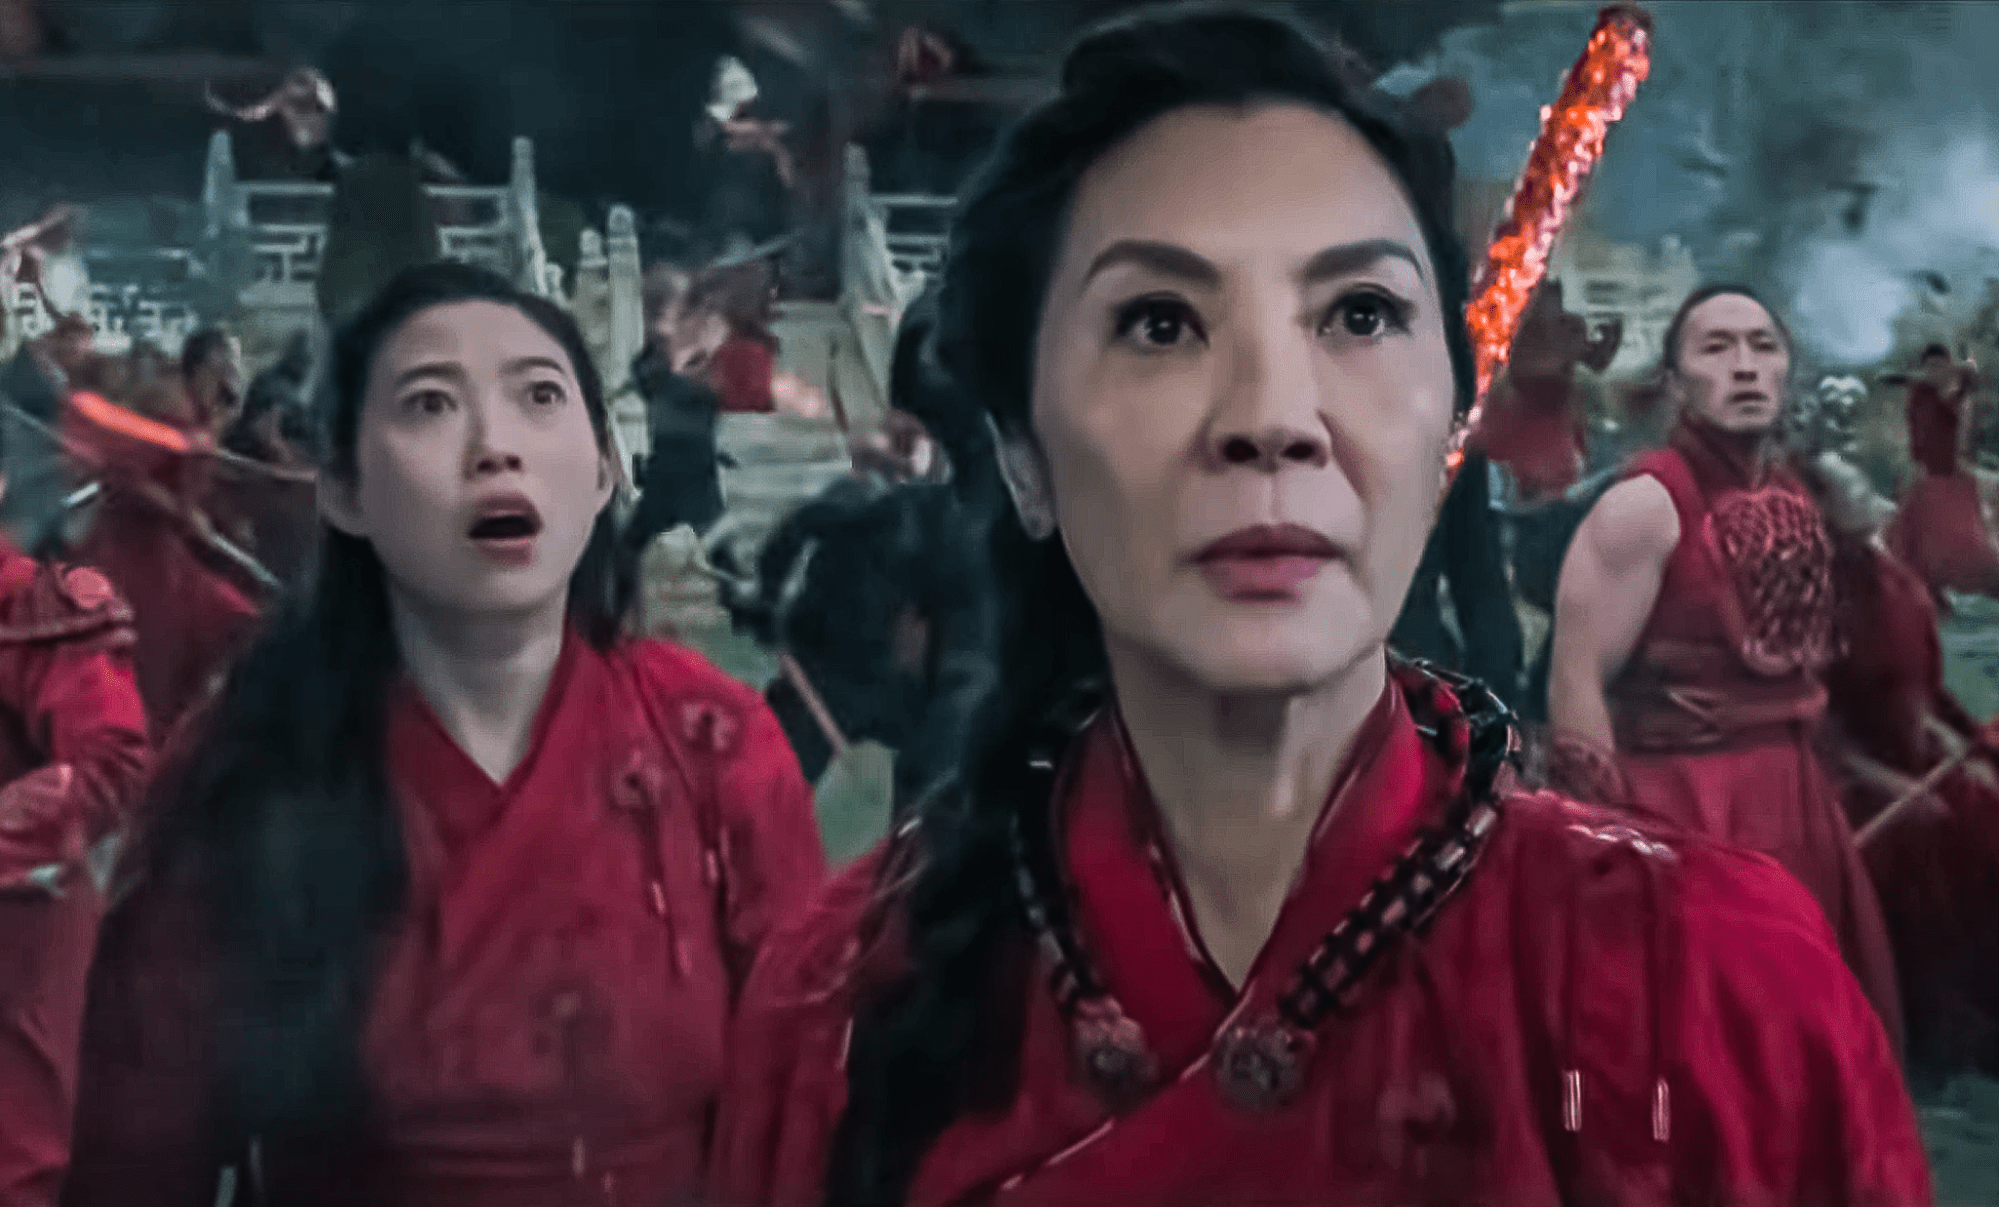 shang chi review - michelle yeoh